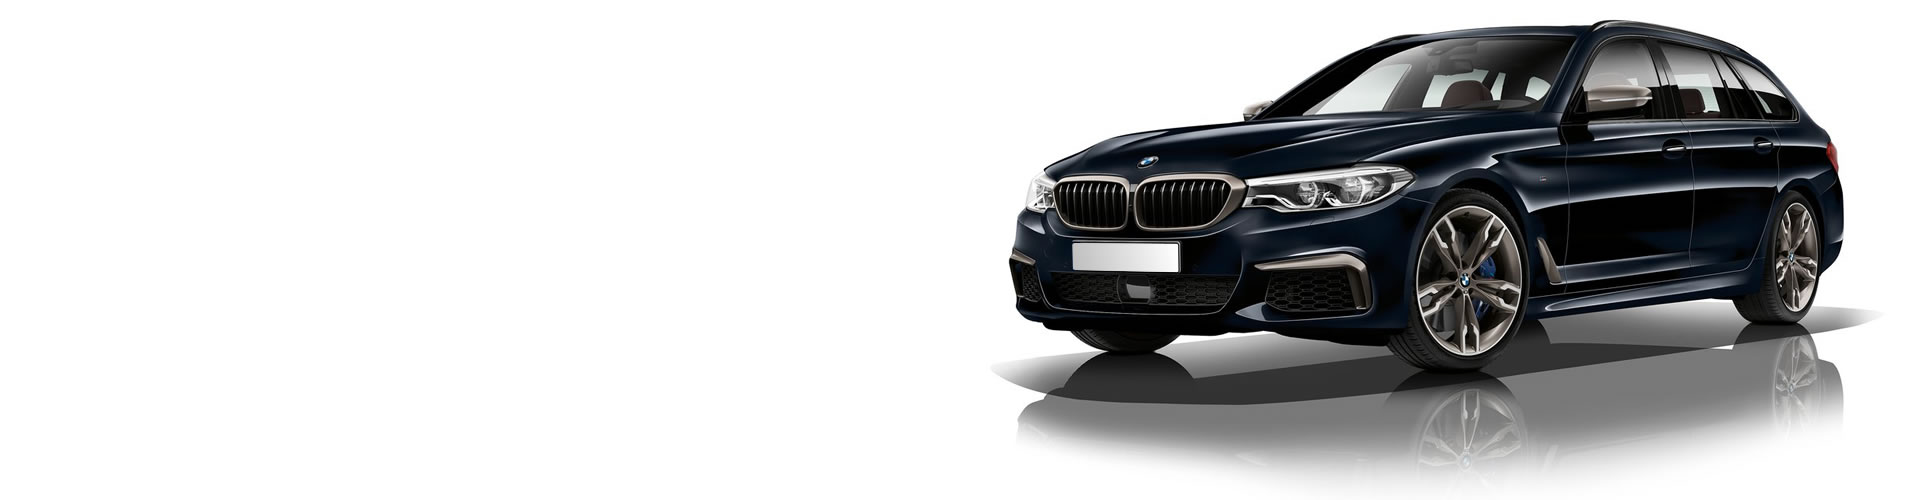 Autowerx BMW and MINI servicing